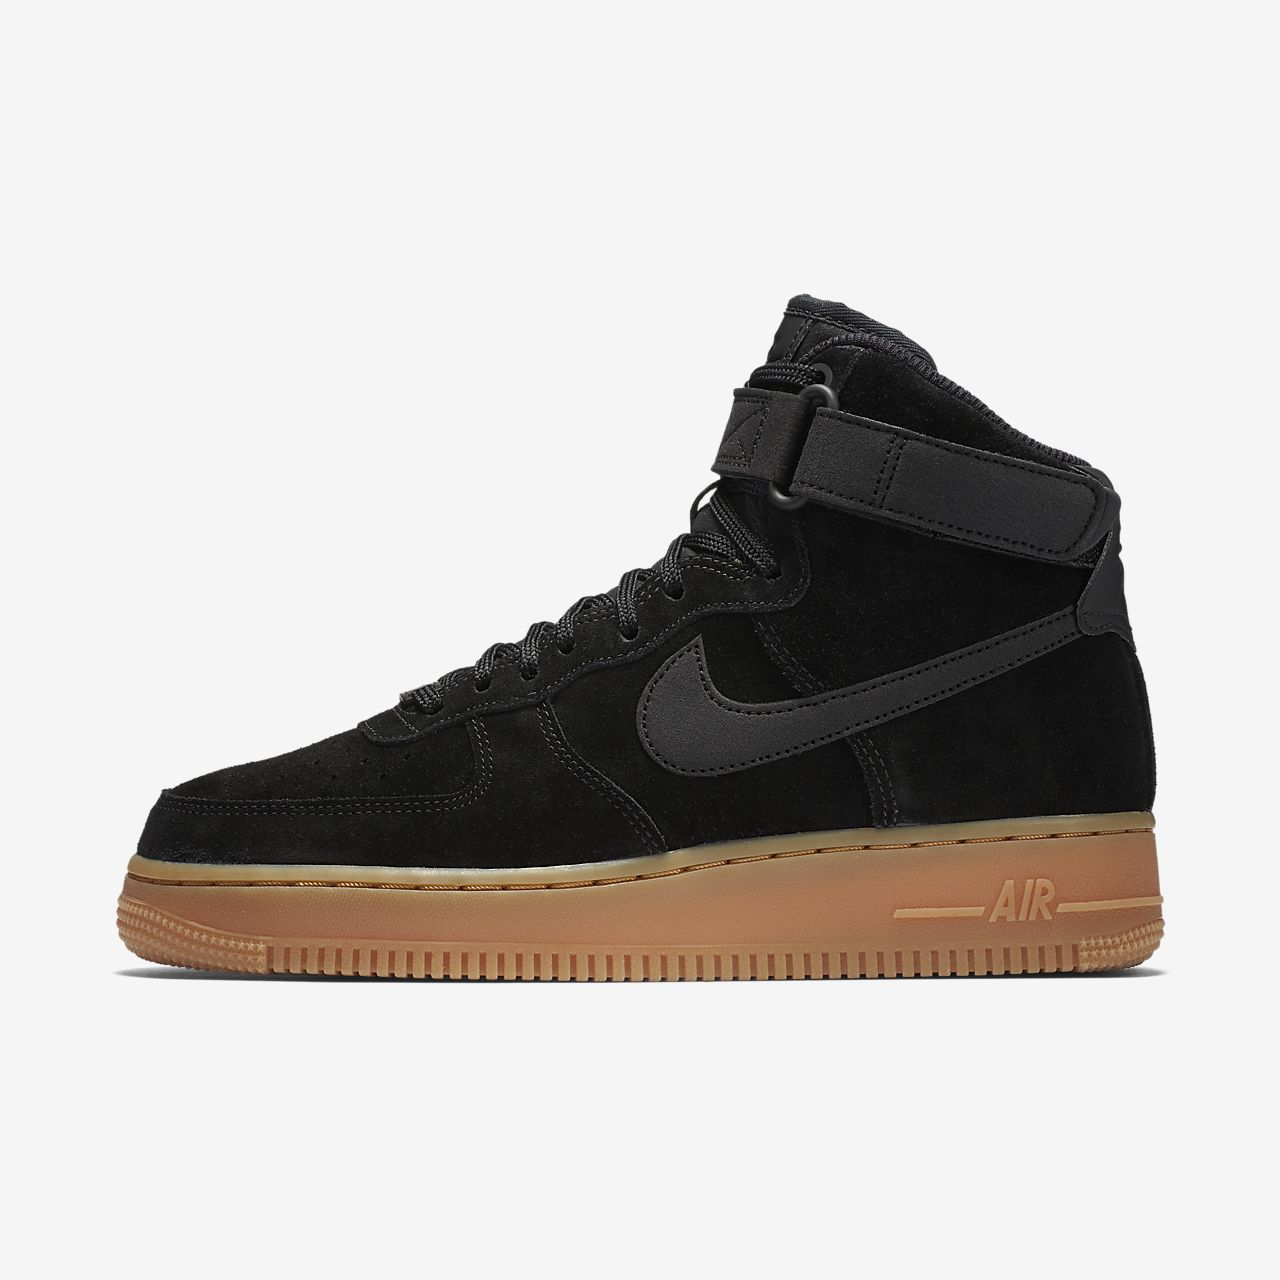 air force 1 gum sole womens nz